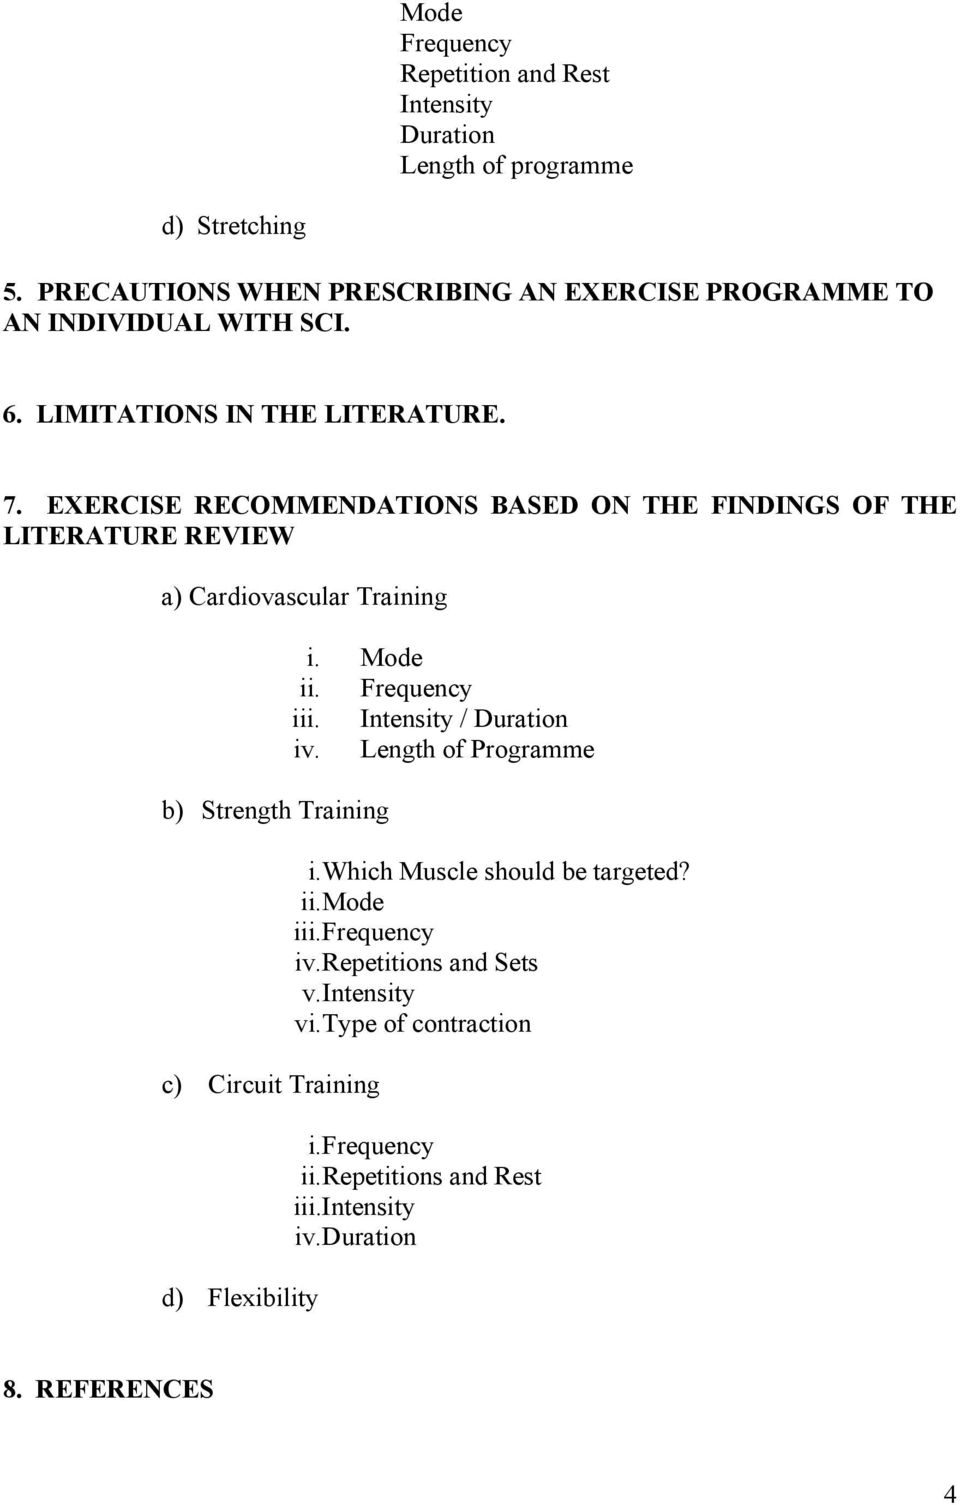 EXERCISE RECOMMENDATIONS BASED ON THE FINDINGS OF THE LITERATURE REVIEW a) Cardiovascular Training b) Strength Training c) Circuit Training d) Flexibility i.